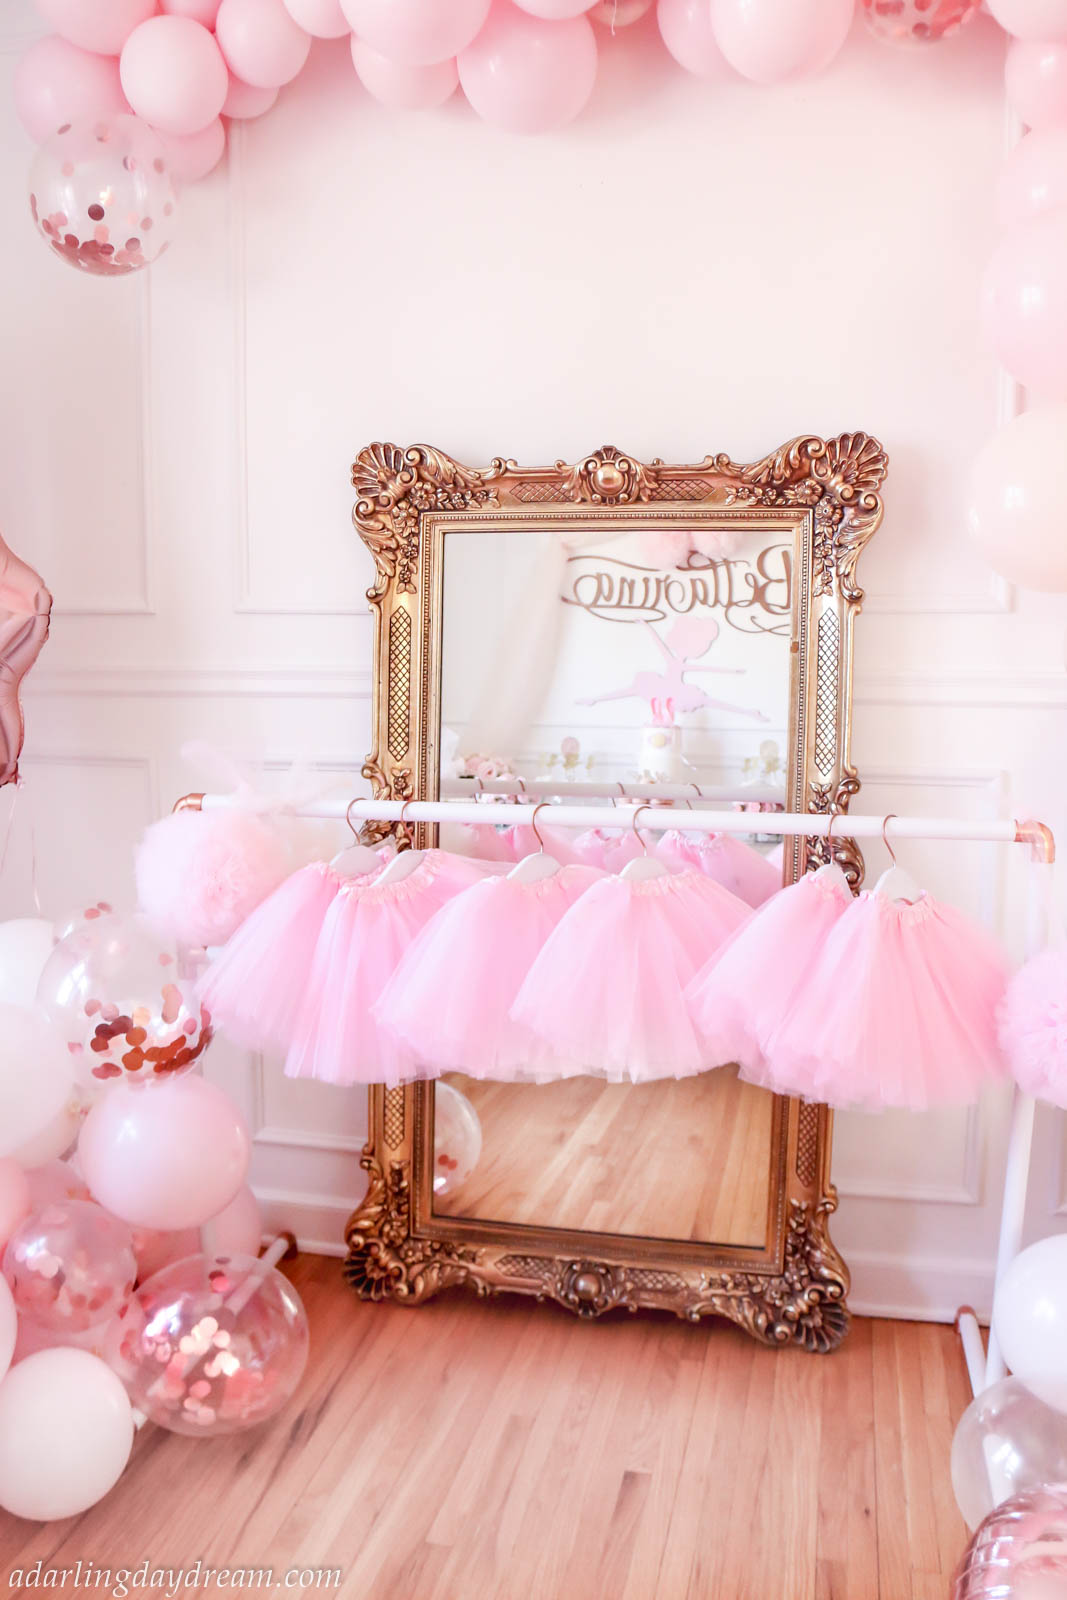 Bella-s-forth-birthday-party-ballerina-unicorn-45